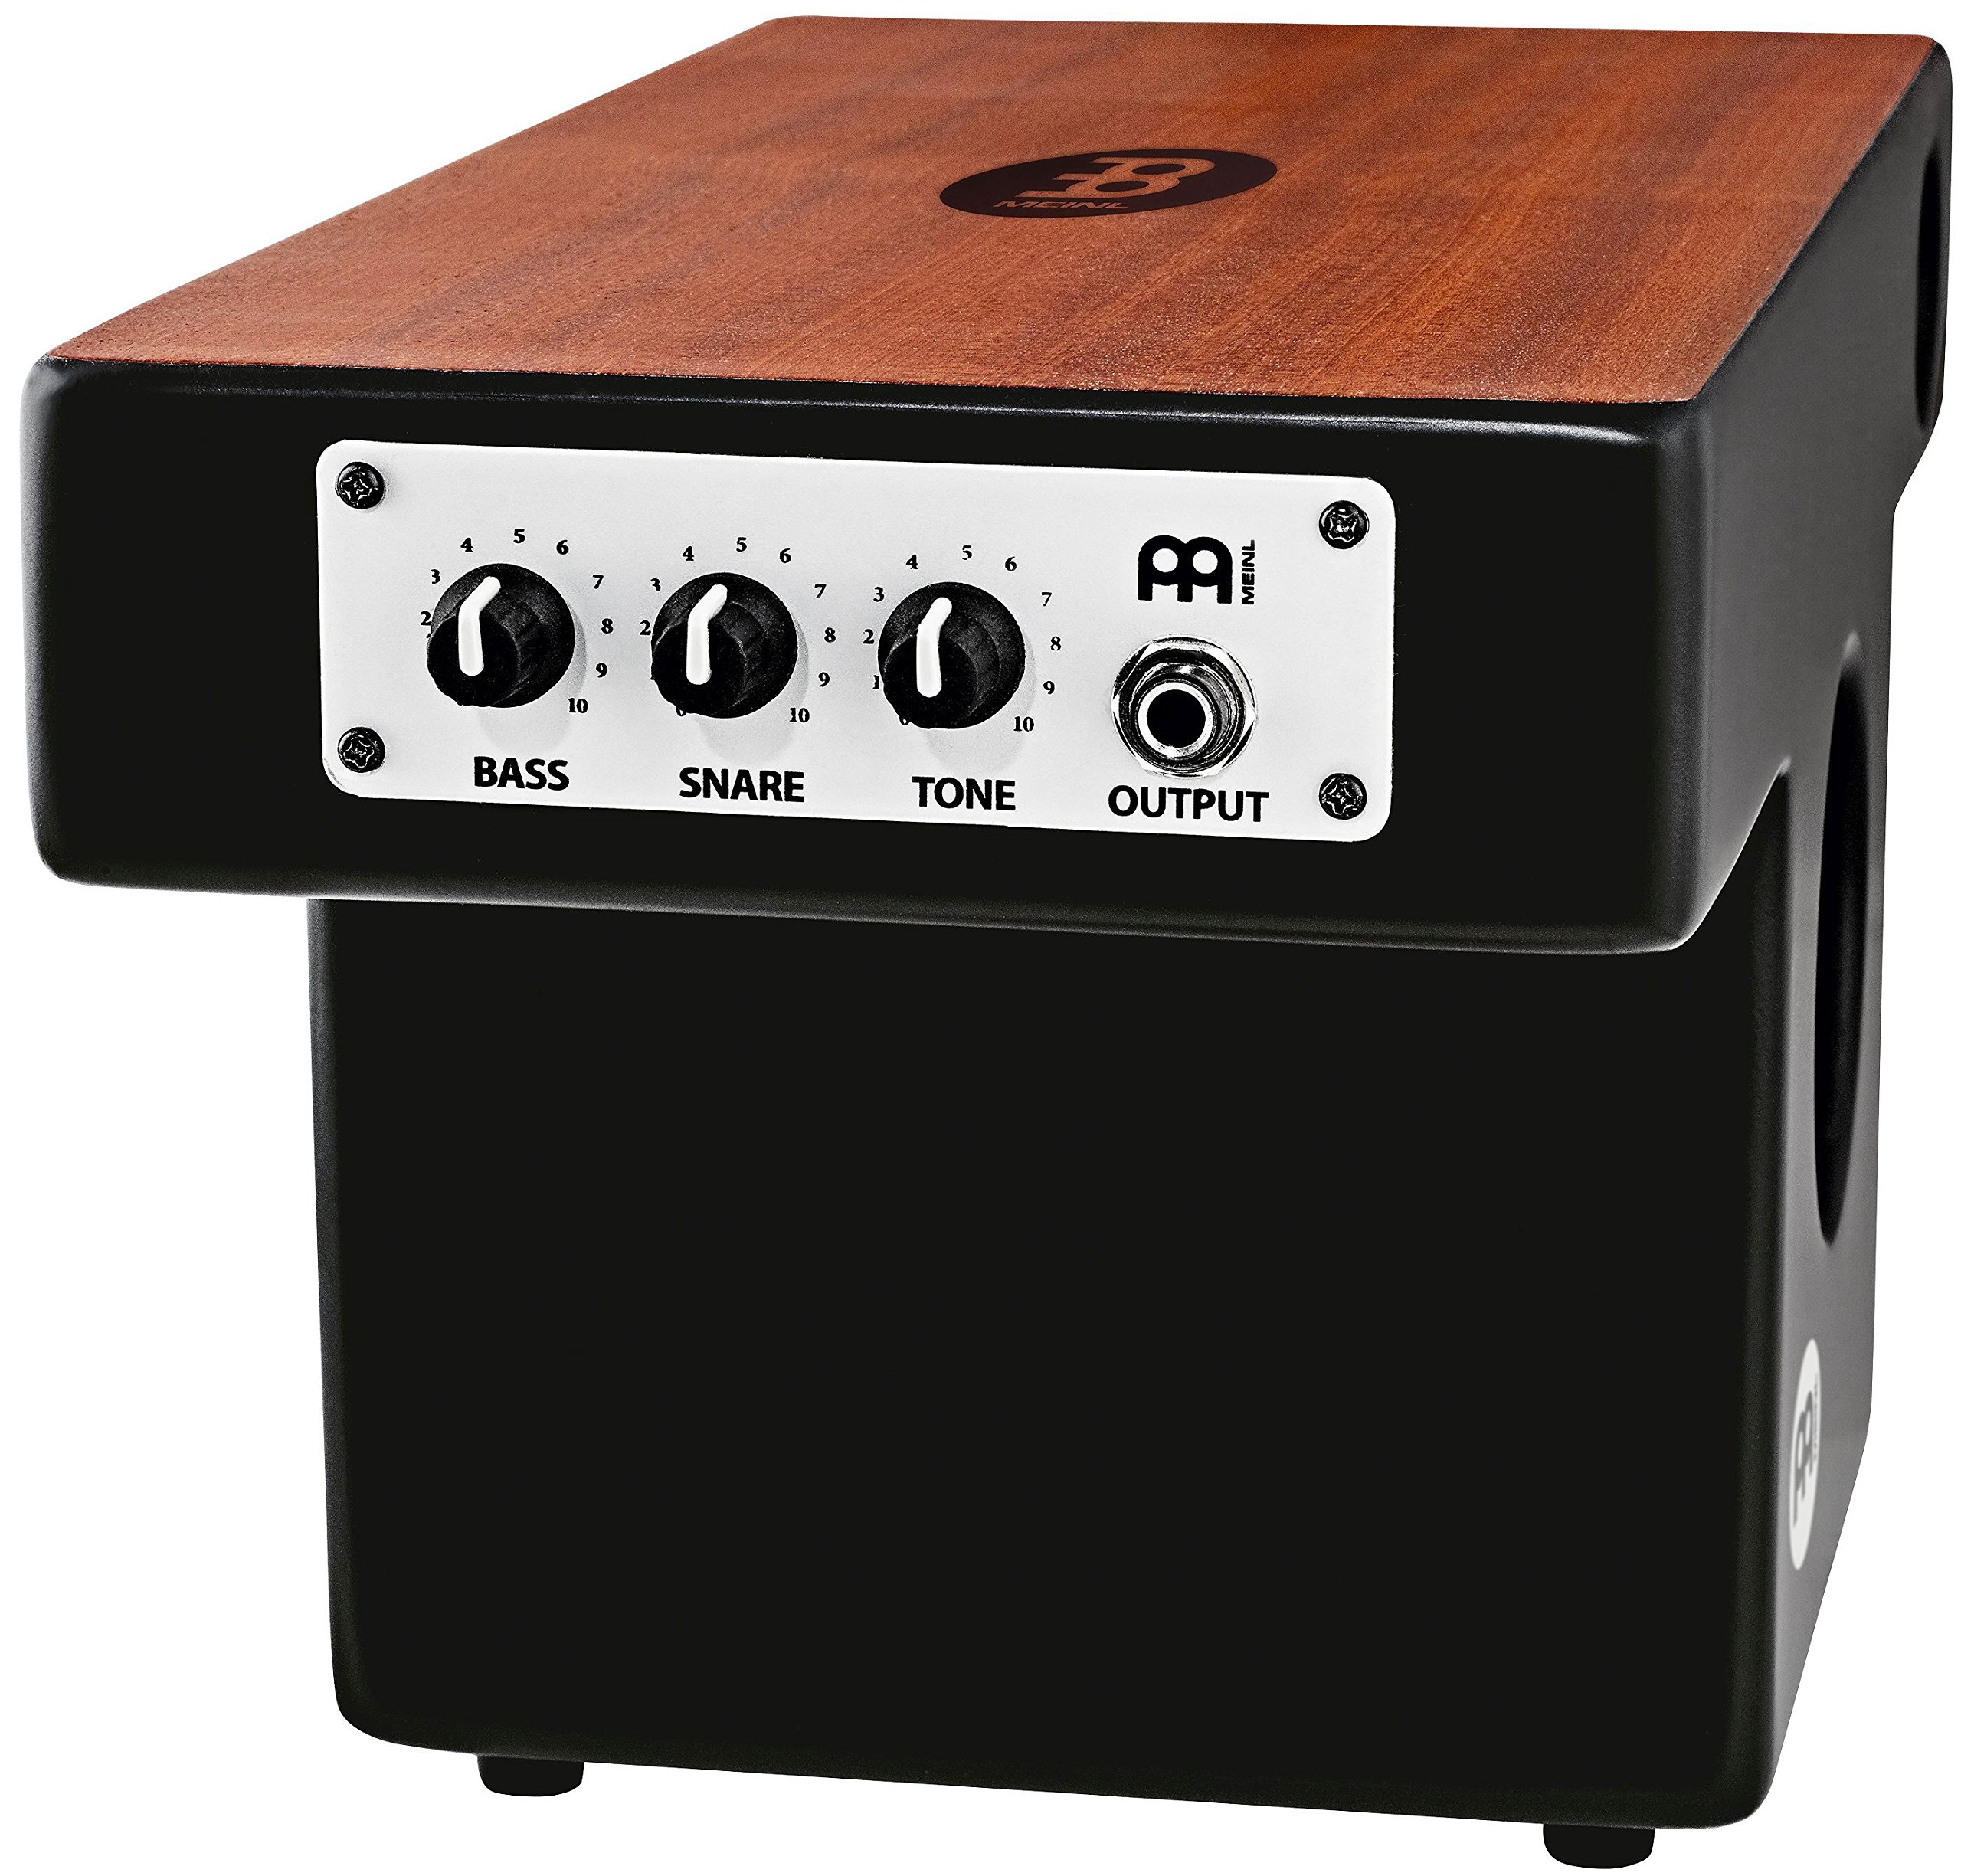 Meinl Pickup Slaptop Cajon Box Drum with Internal Snares and Forward Projecting Sound Ports - NOT MADE IN CHINA - Mahogany Playing Surface, 2-YEAR WARRANTY (PTOPCAJ4MH-M) by Meinl Percussion (Image #2)